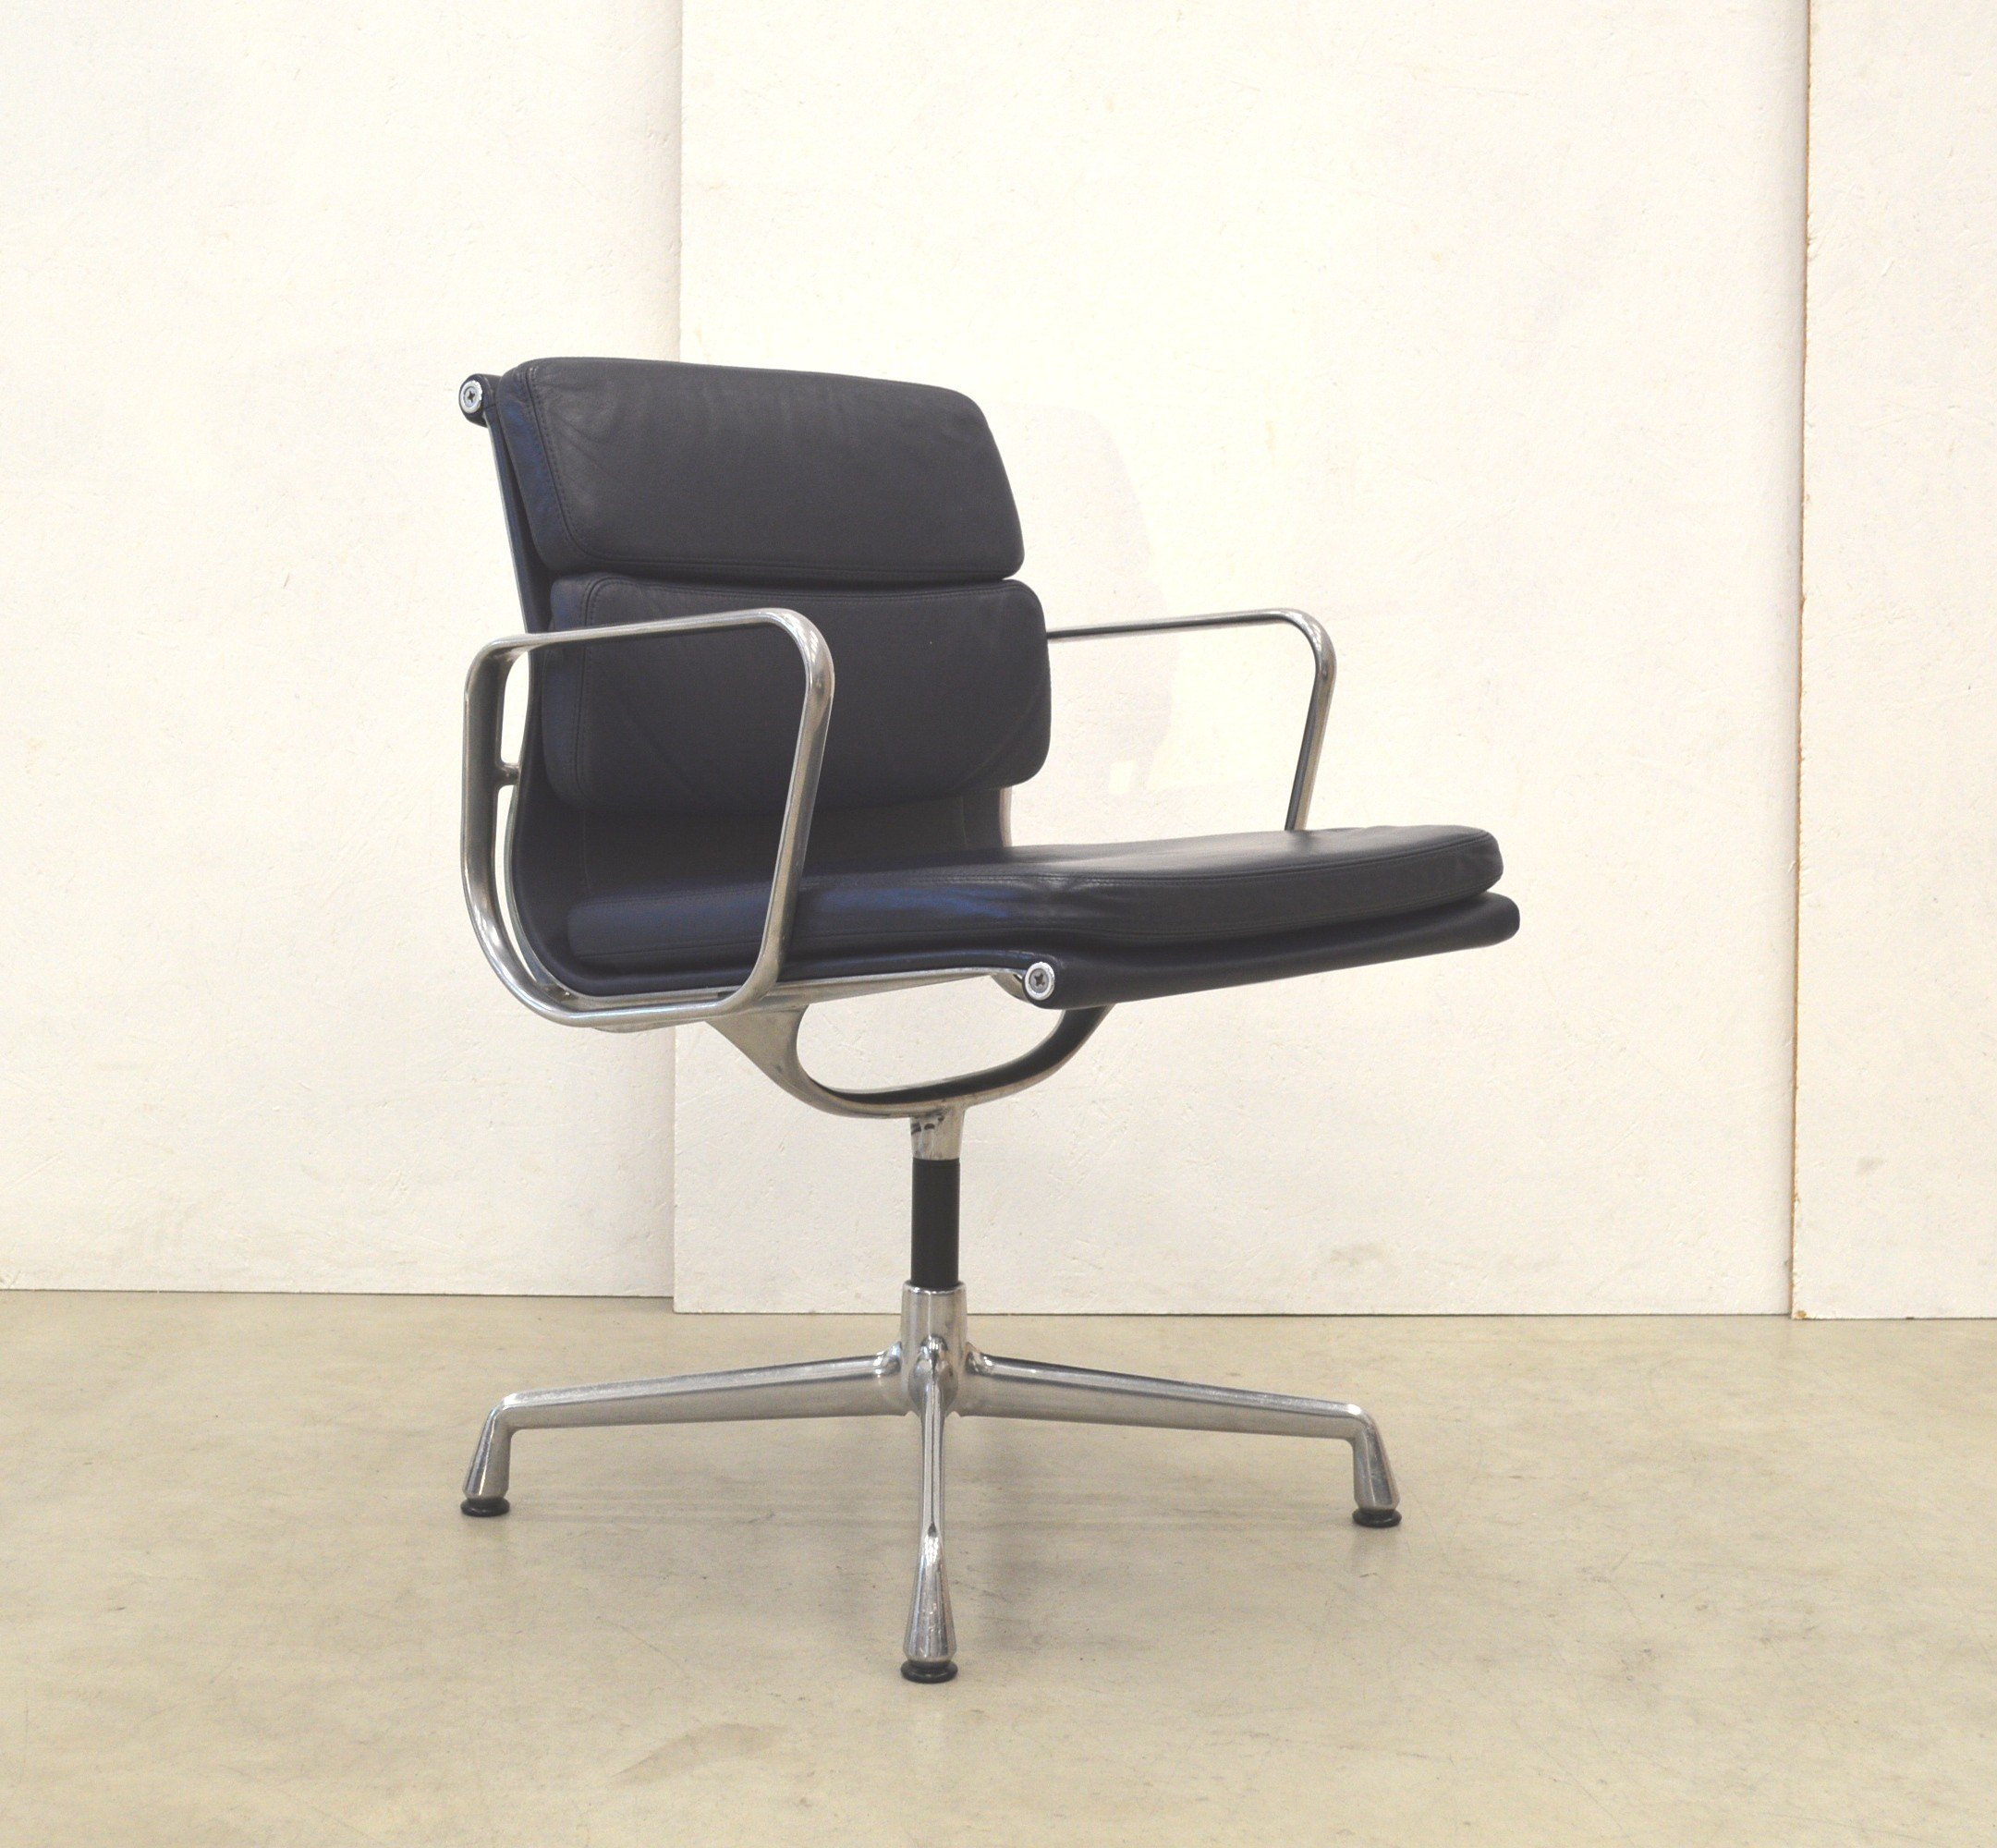 vitra ea208 soft pad alu chair in leather by charles ray. Black Bedroom Furniture Sets. Home Design Ideas